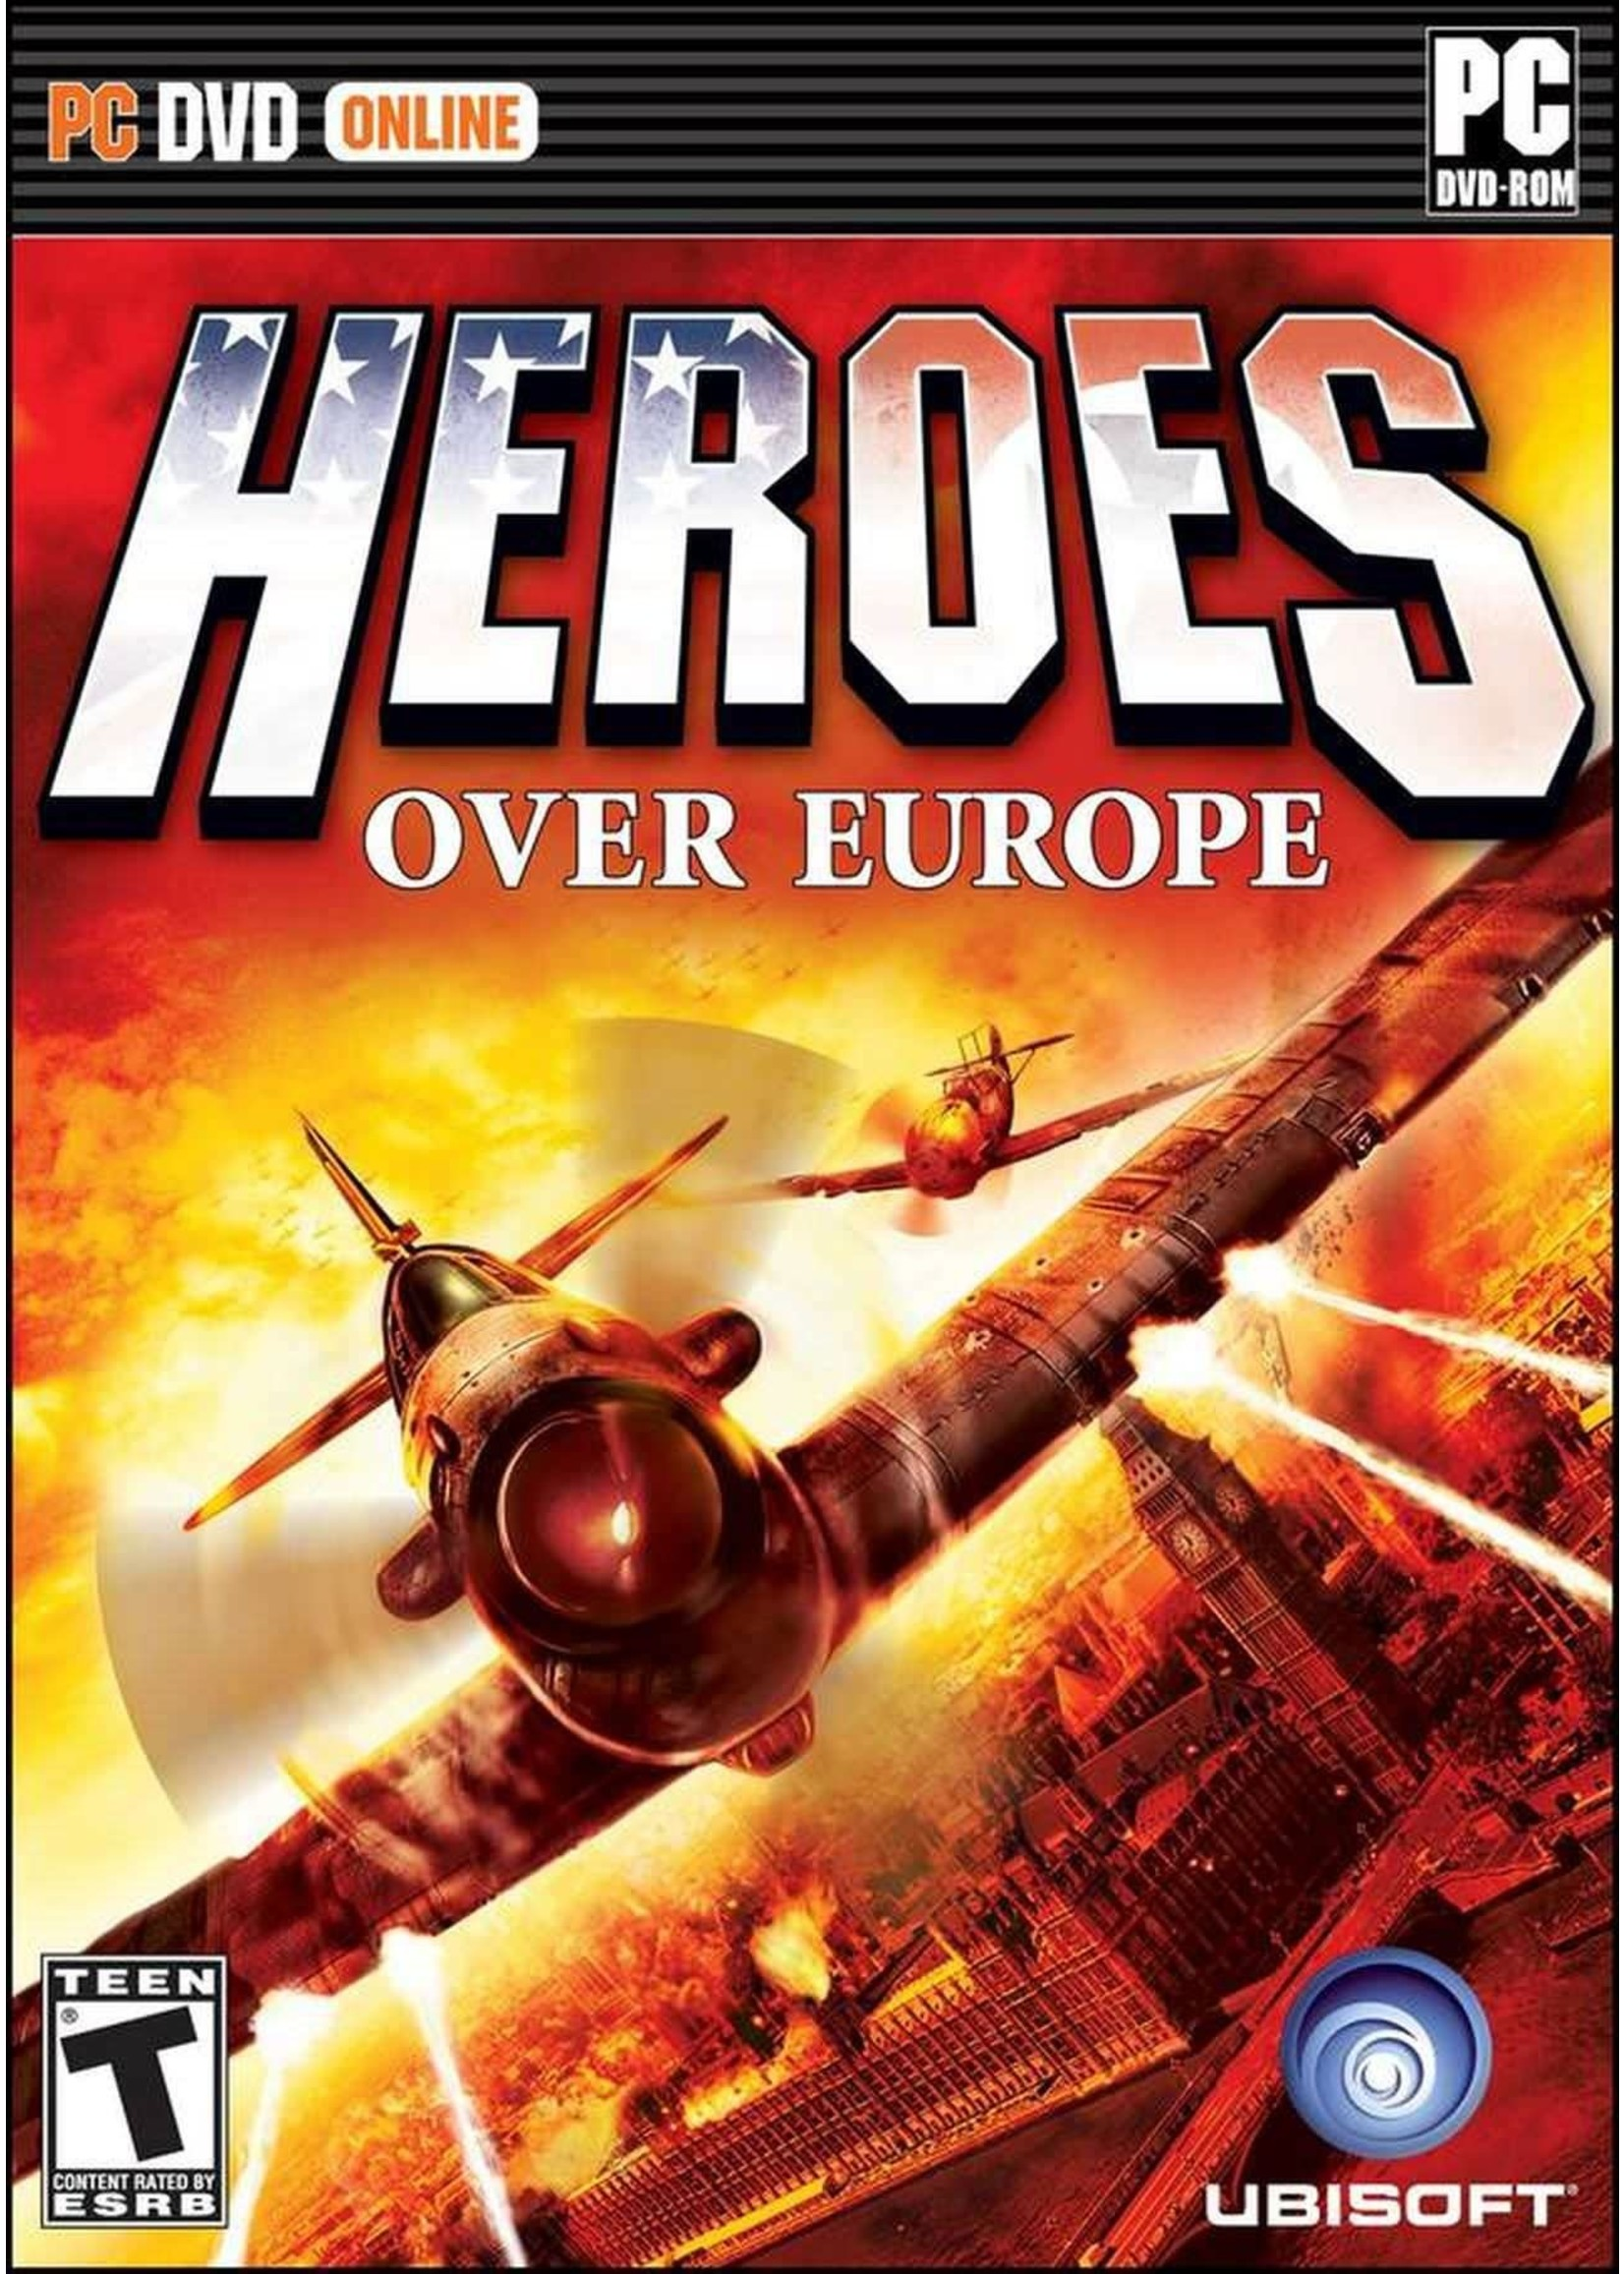 Heroes Over Europe PC Games